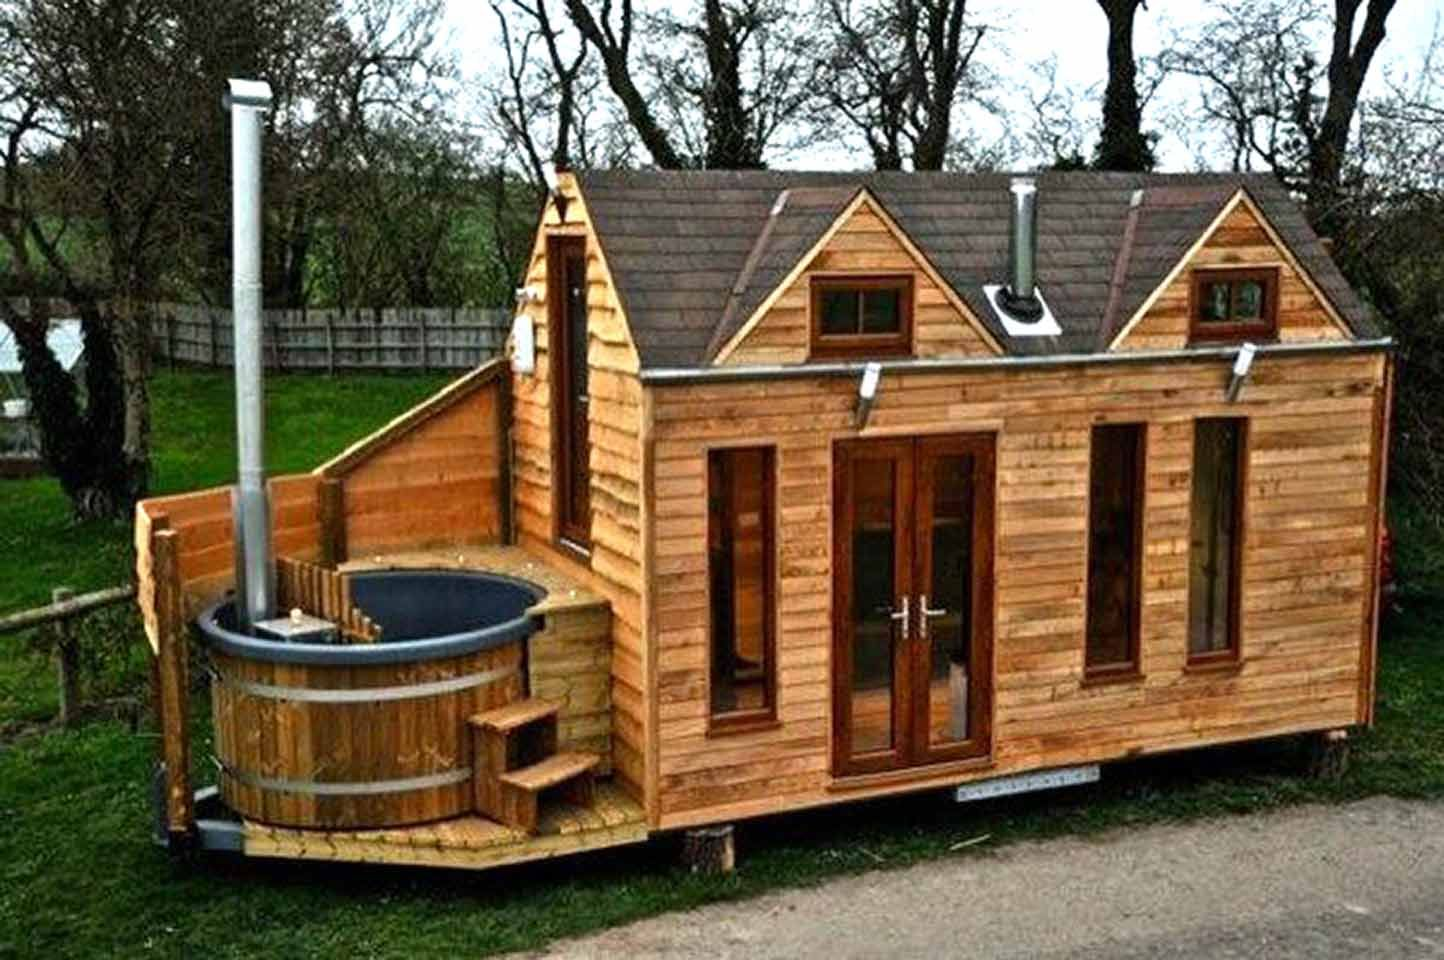 Miraculous Small Houses On Wheels House Beautifull Living Rooms Ideas Largest Home Design Picture Inspirations Pitcheantrous